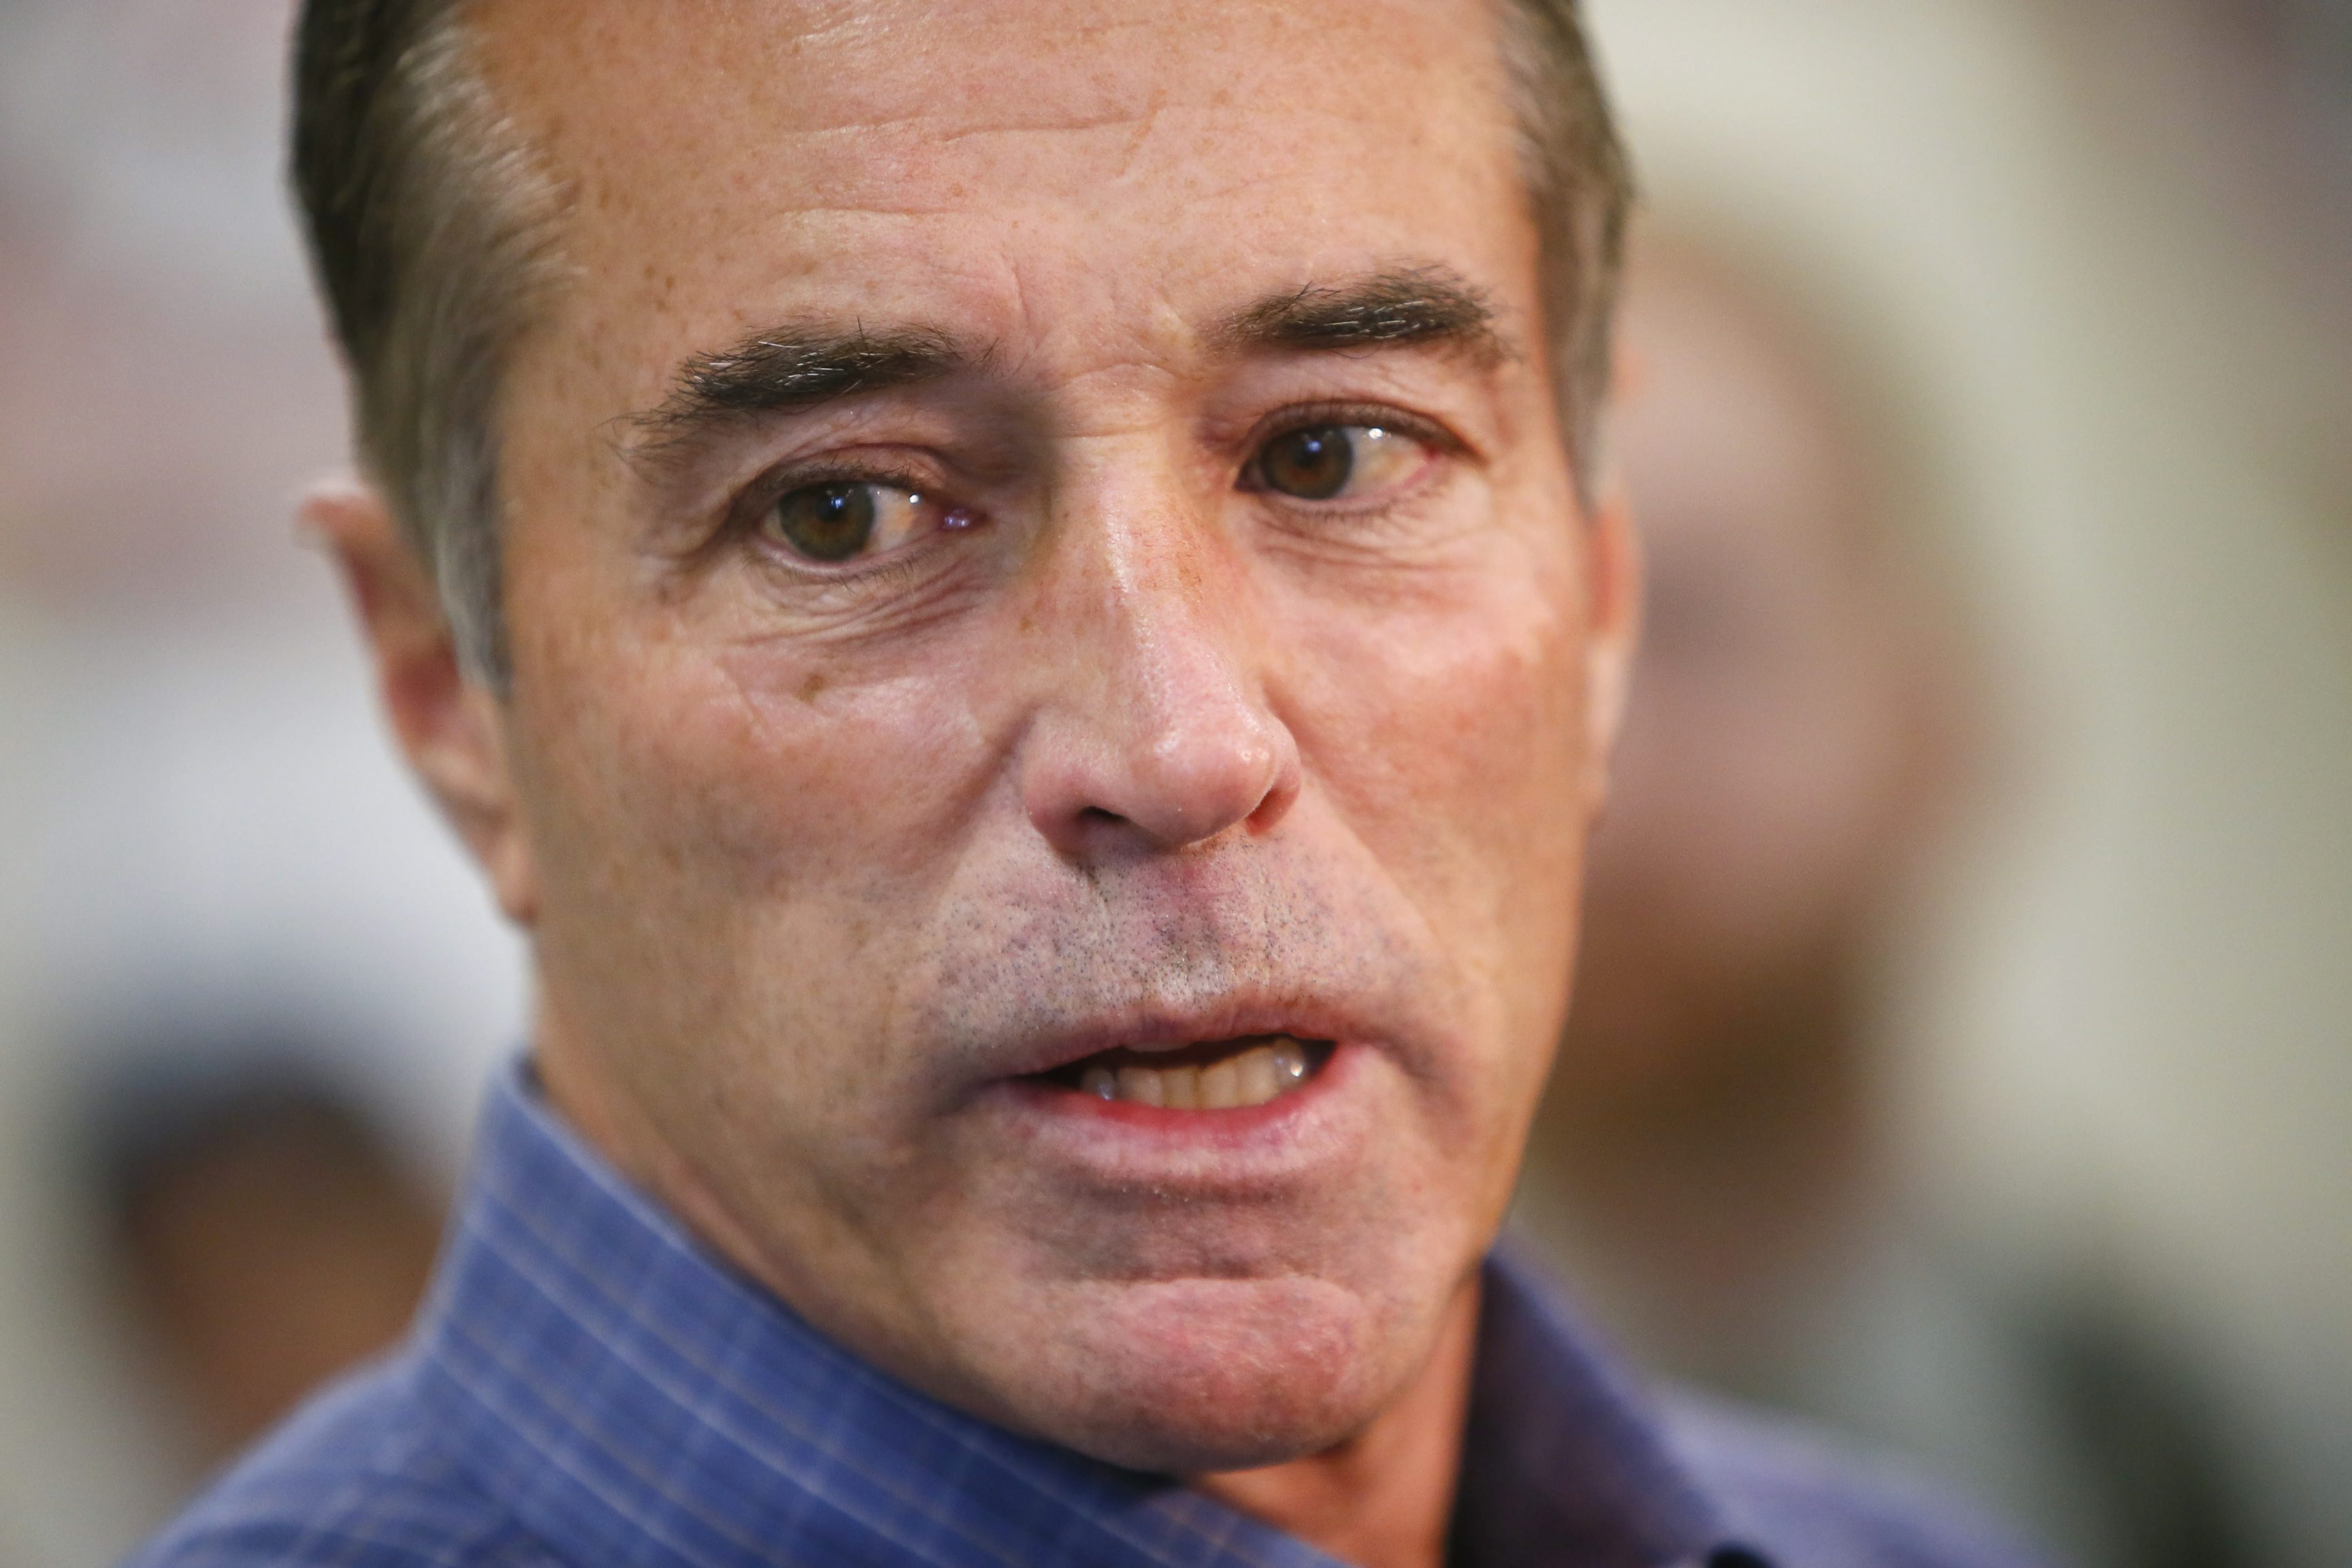 """We need a president willing to make the tough decisions necessary to restore our country to greatness,"" Rep. Chris Collins said in his statement. ""I believe Donald Trump is the man for the job, and I am proud to provide him with my support."""